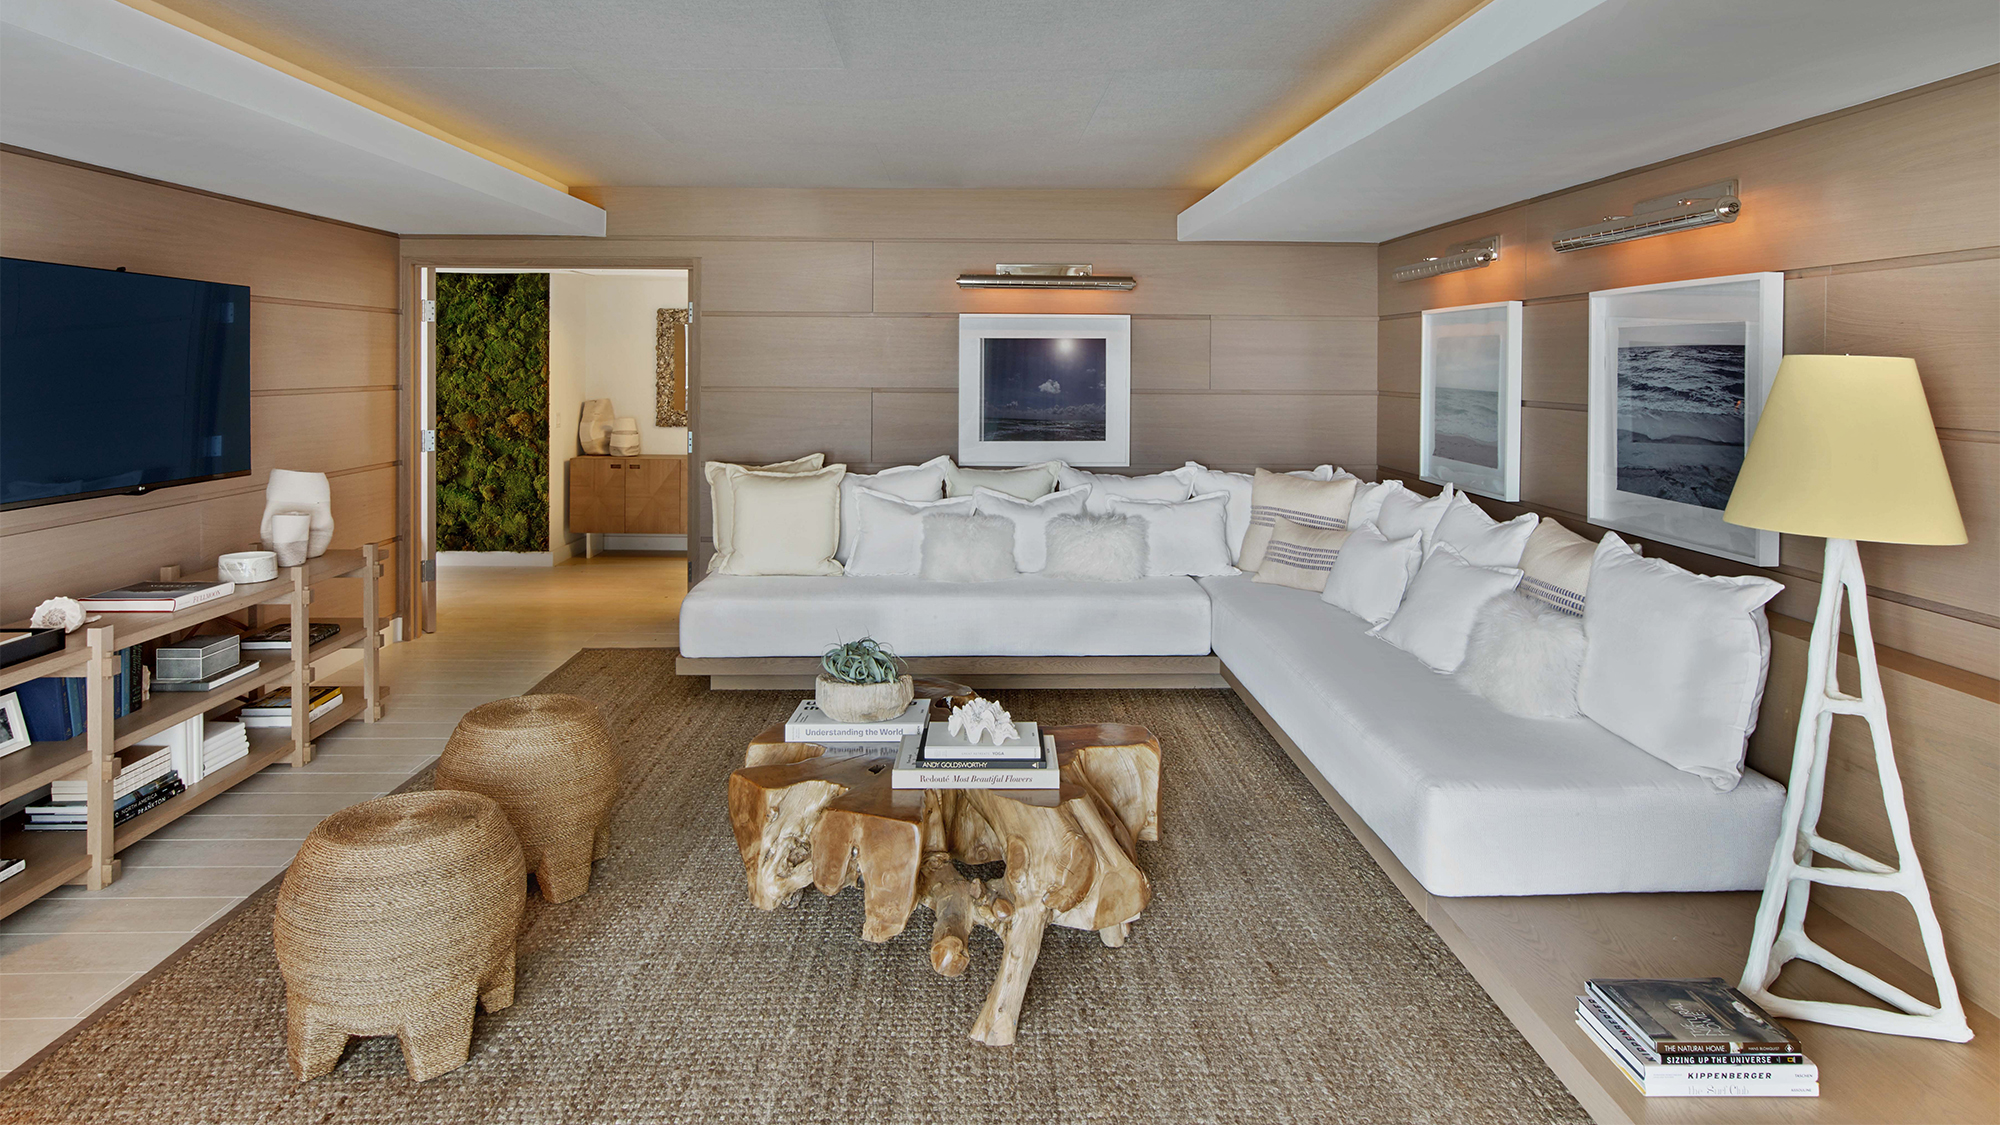 1 Hotel South Beach rebrands top suites as Retreat Collection